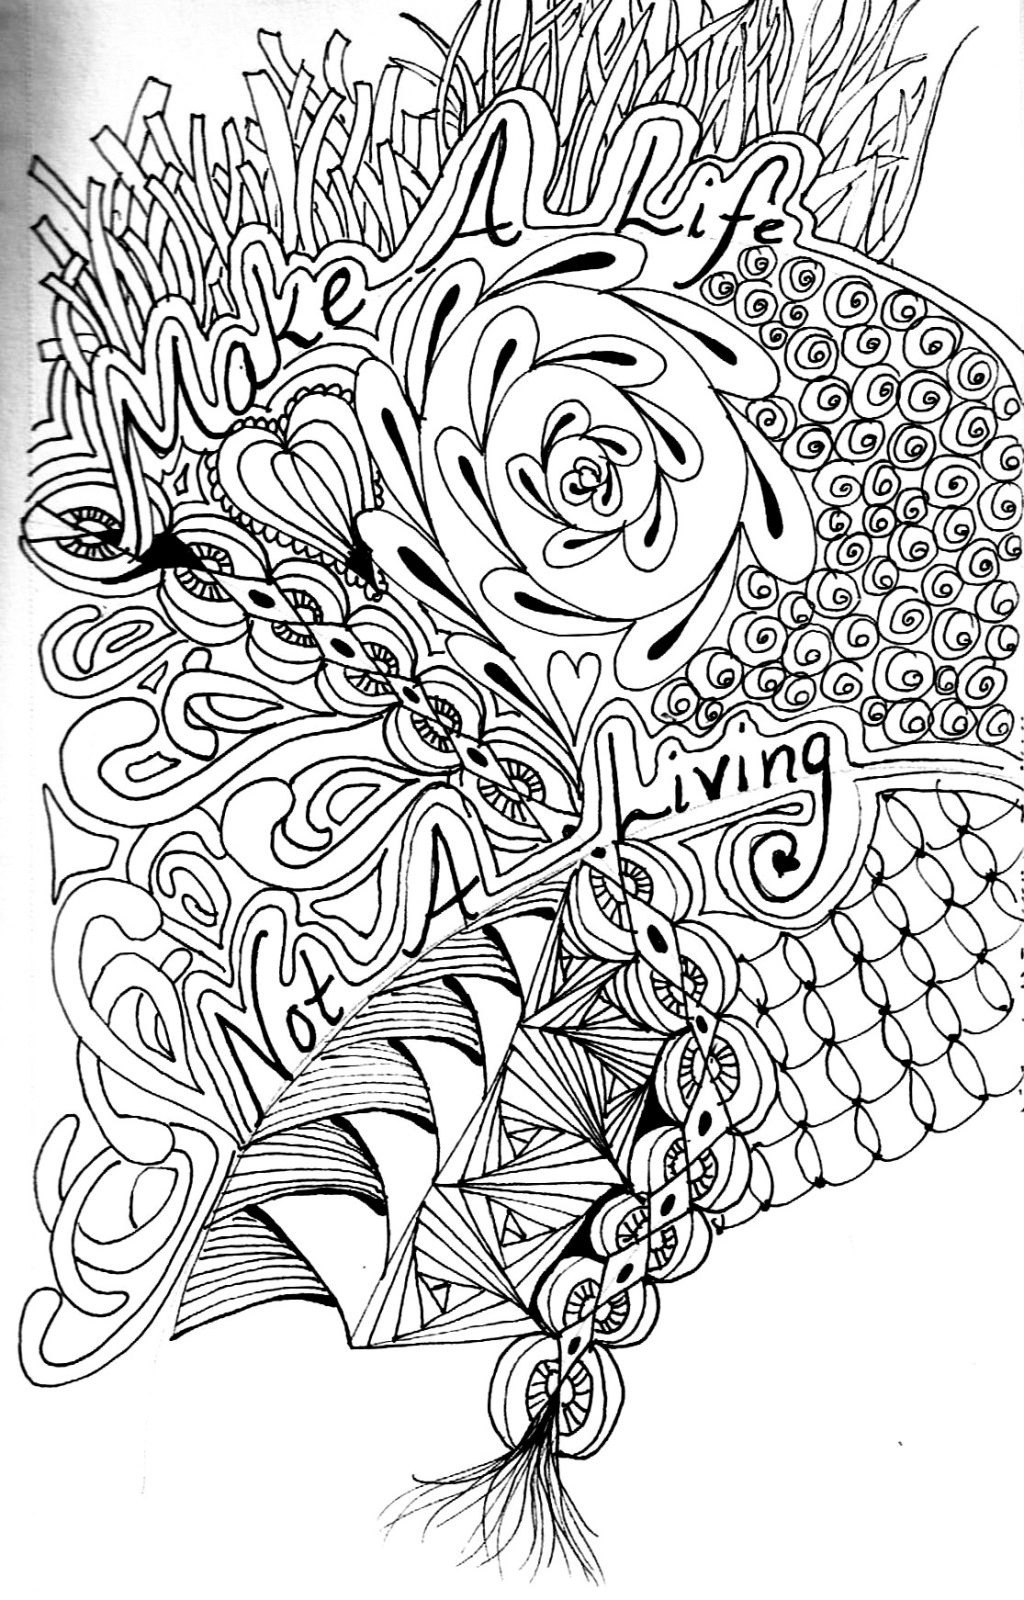 Coloring Page ~ Free Printable Advanced Coloring Pages For Adults - Free Printable Coloring Pages For Adults Advanced